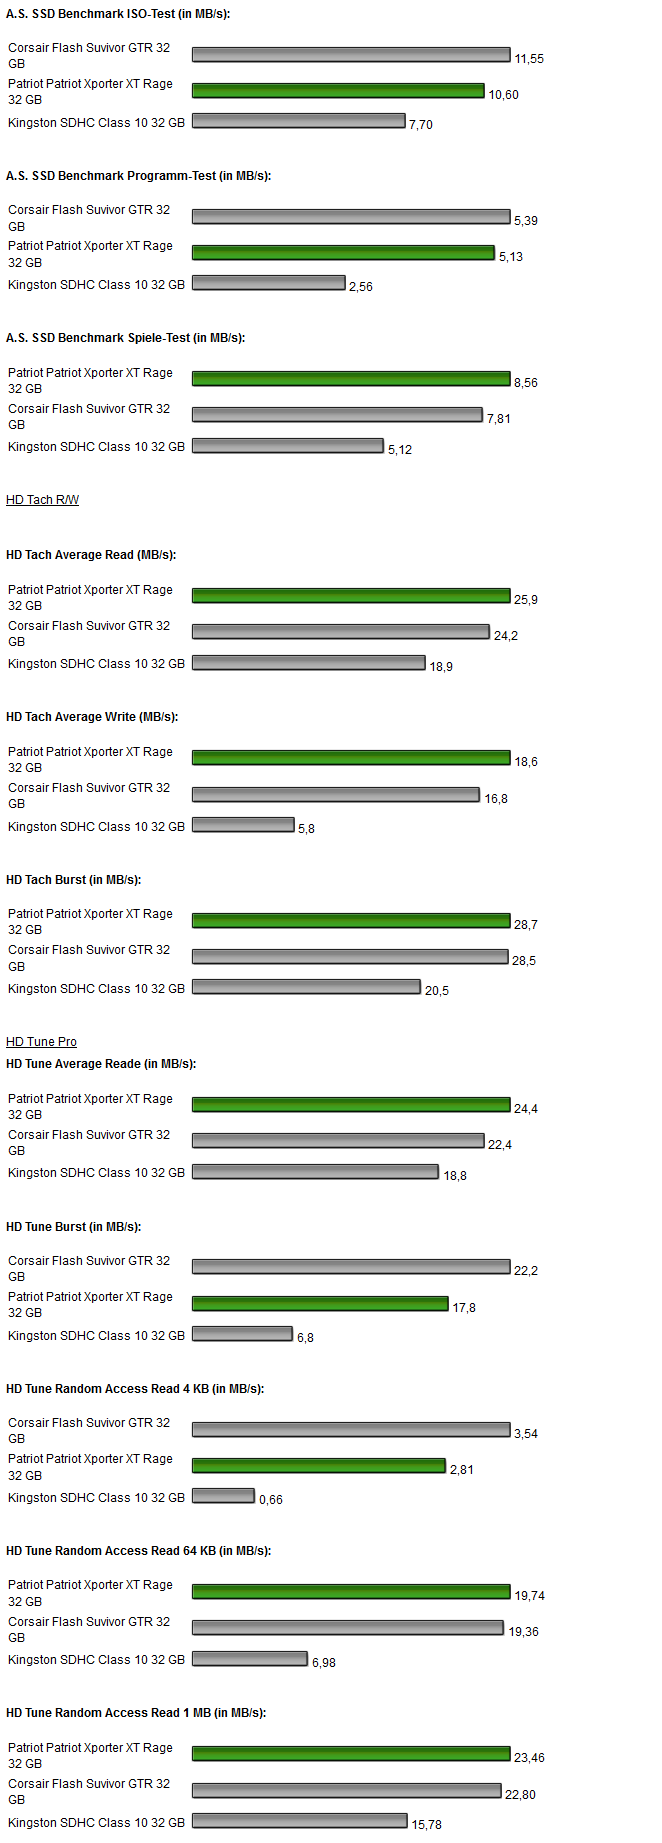 Patriot Xporter Stick Test Benchmarks